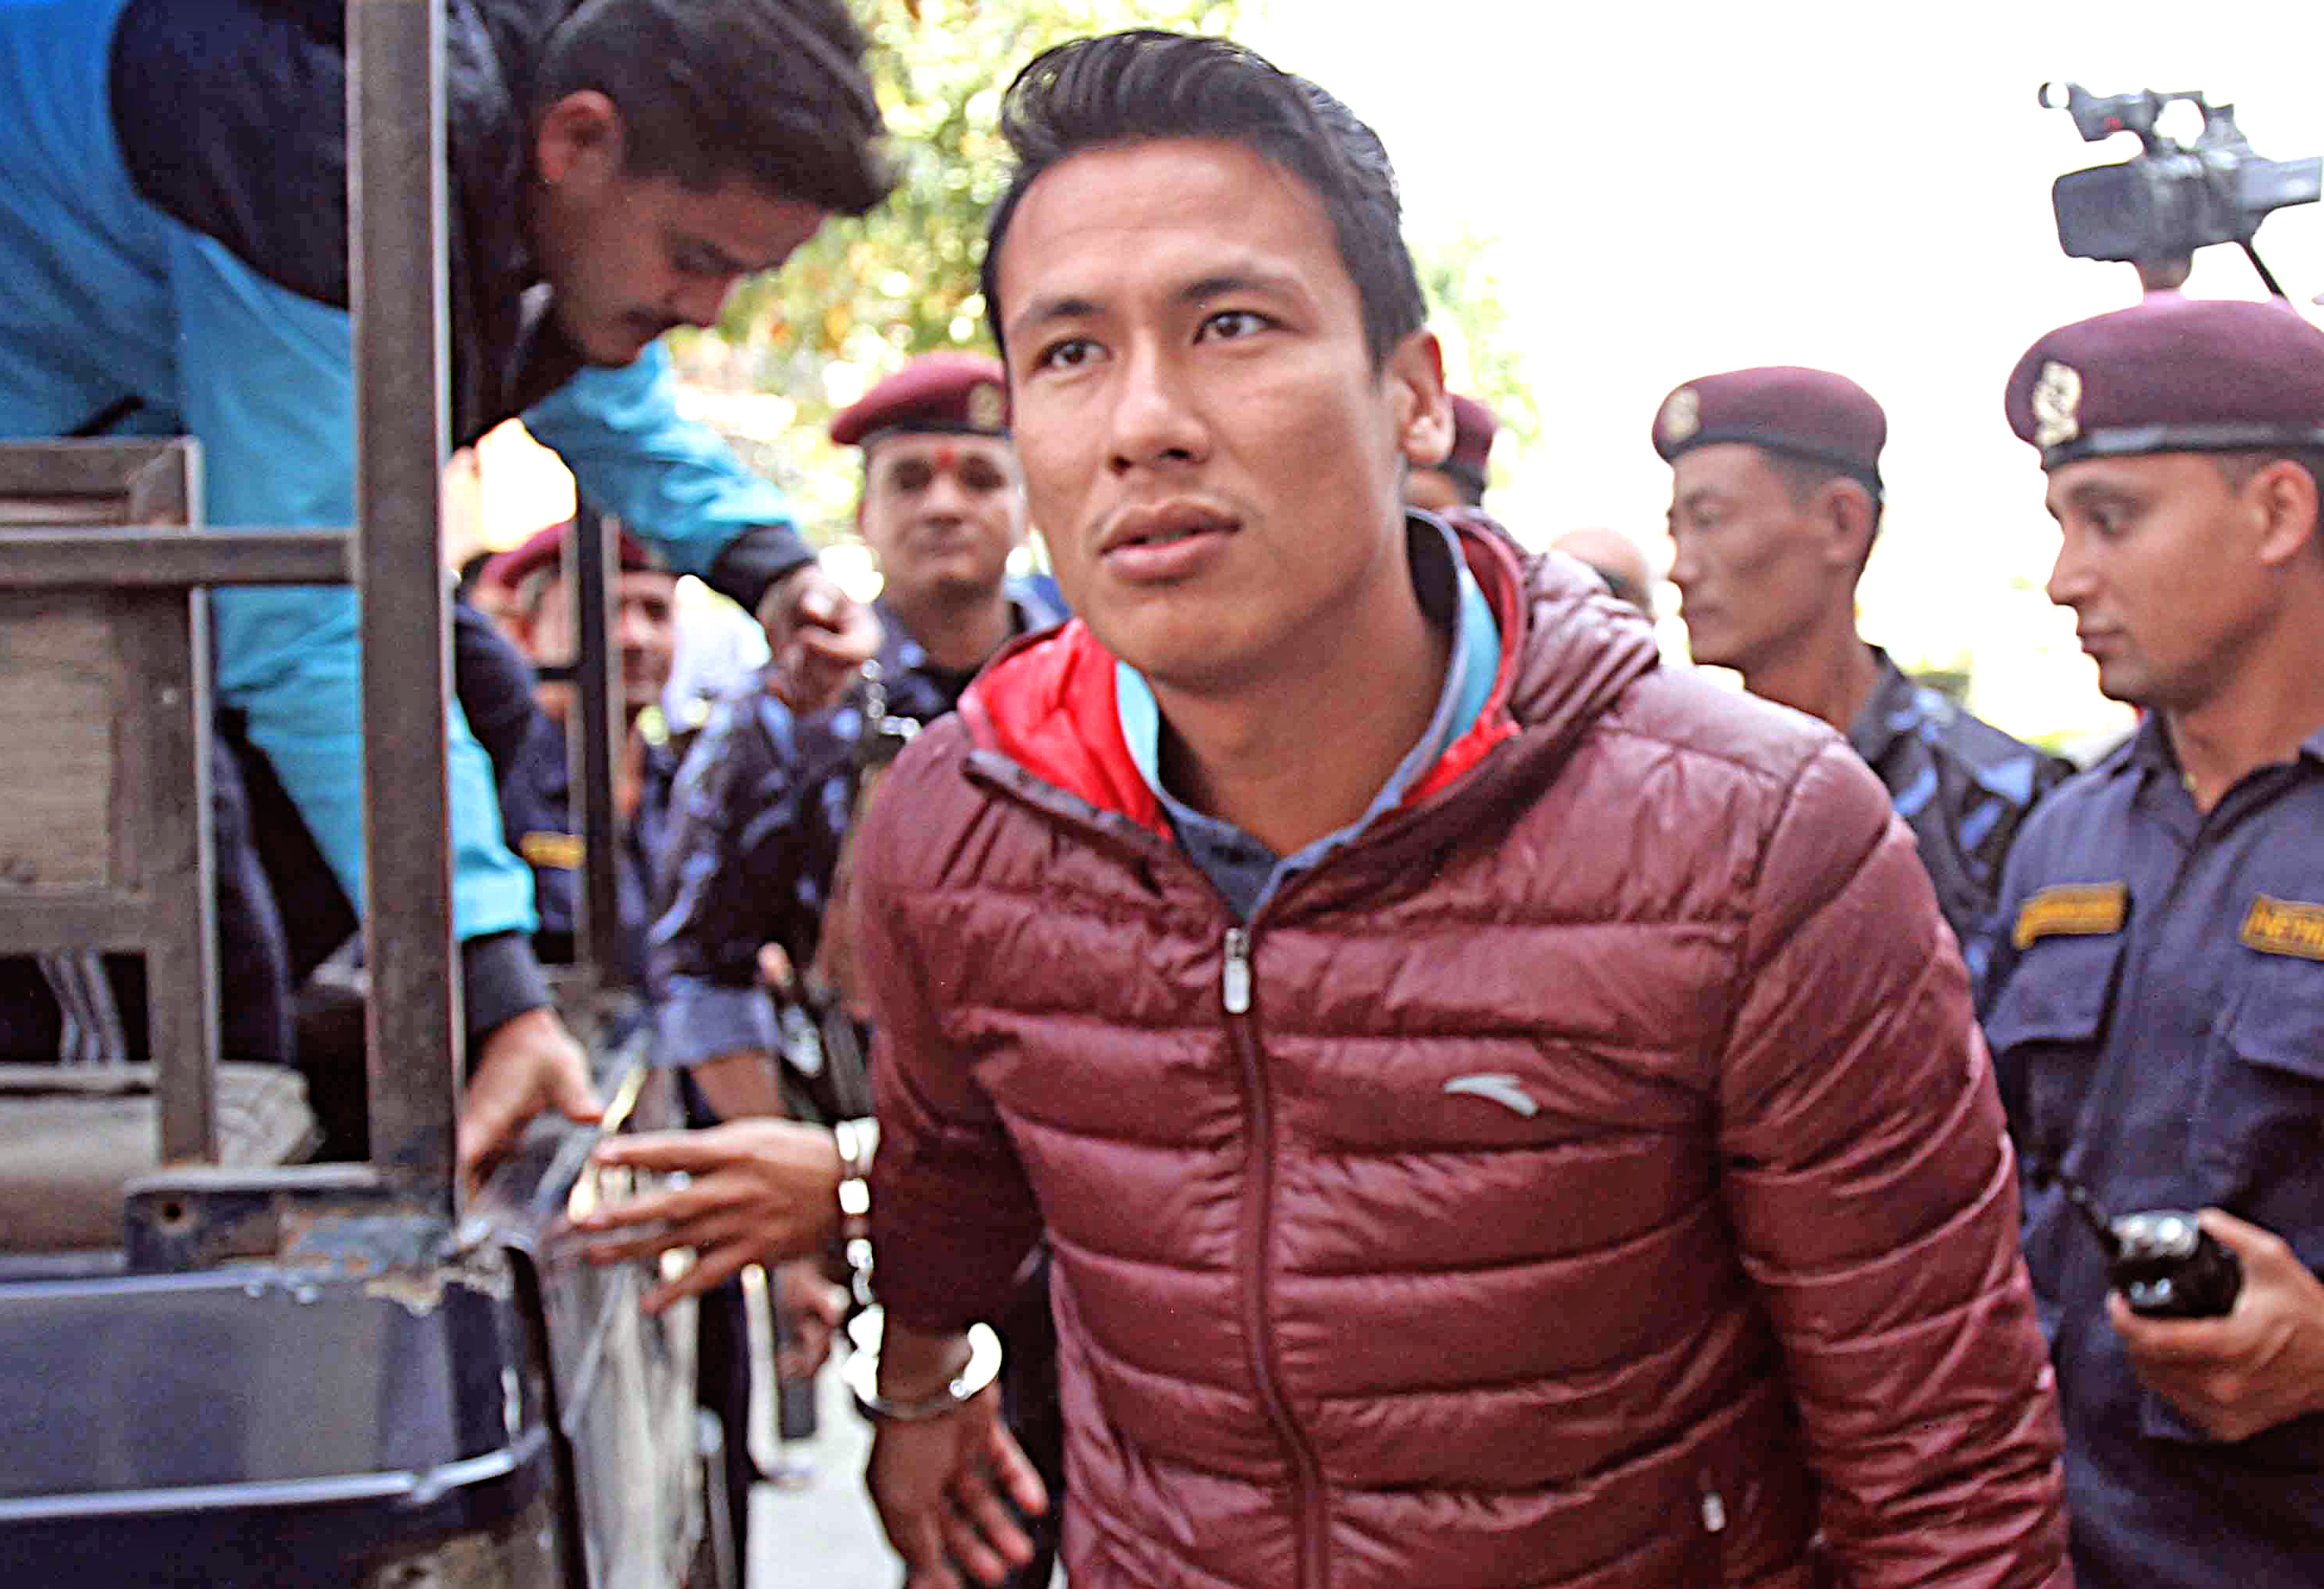 Suspended skipper Sagar Thapa arriving at the Special Court in Babarmahal on Tuesday, October 27, 2015. Photo: Udipt Singh Chhetry/ THT